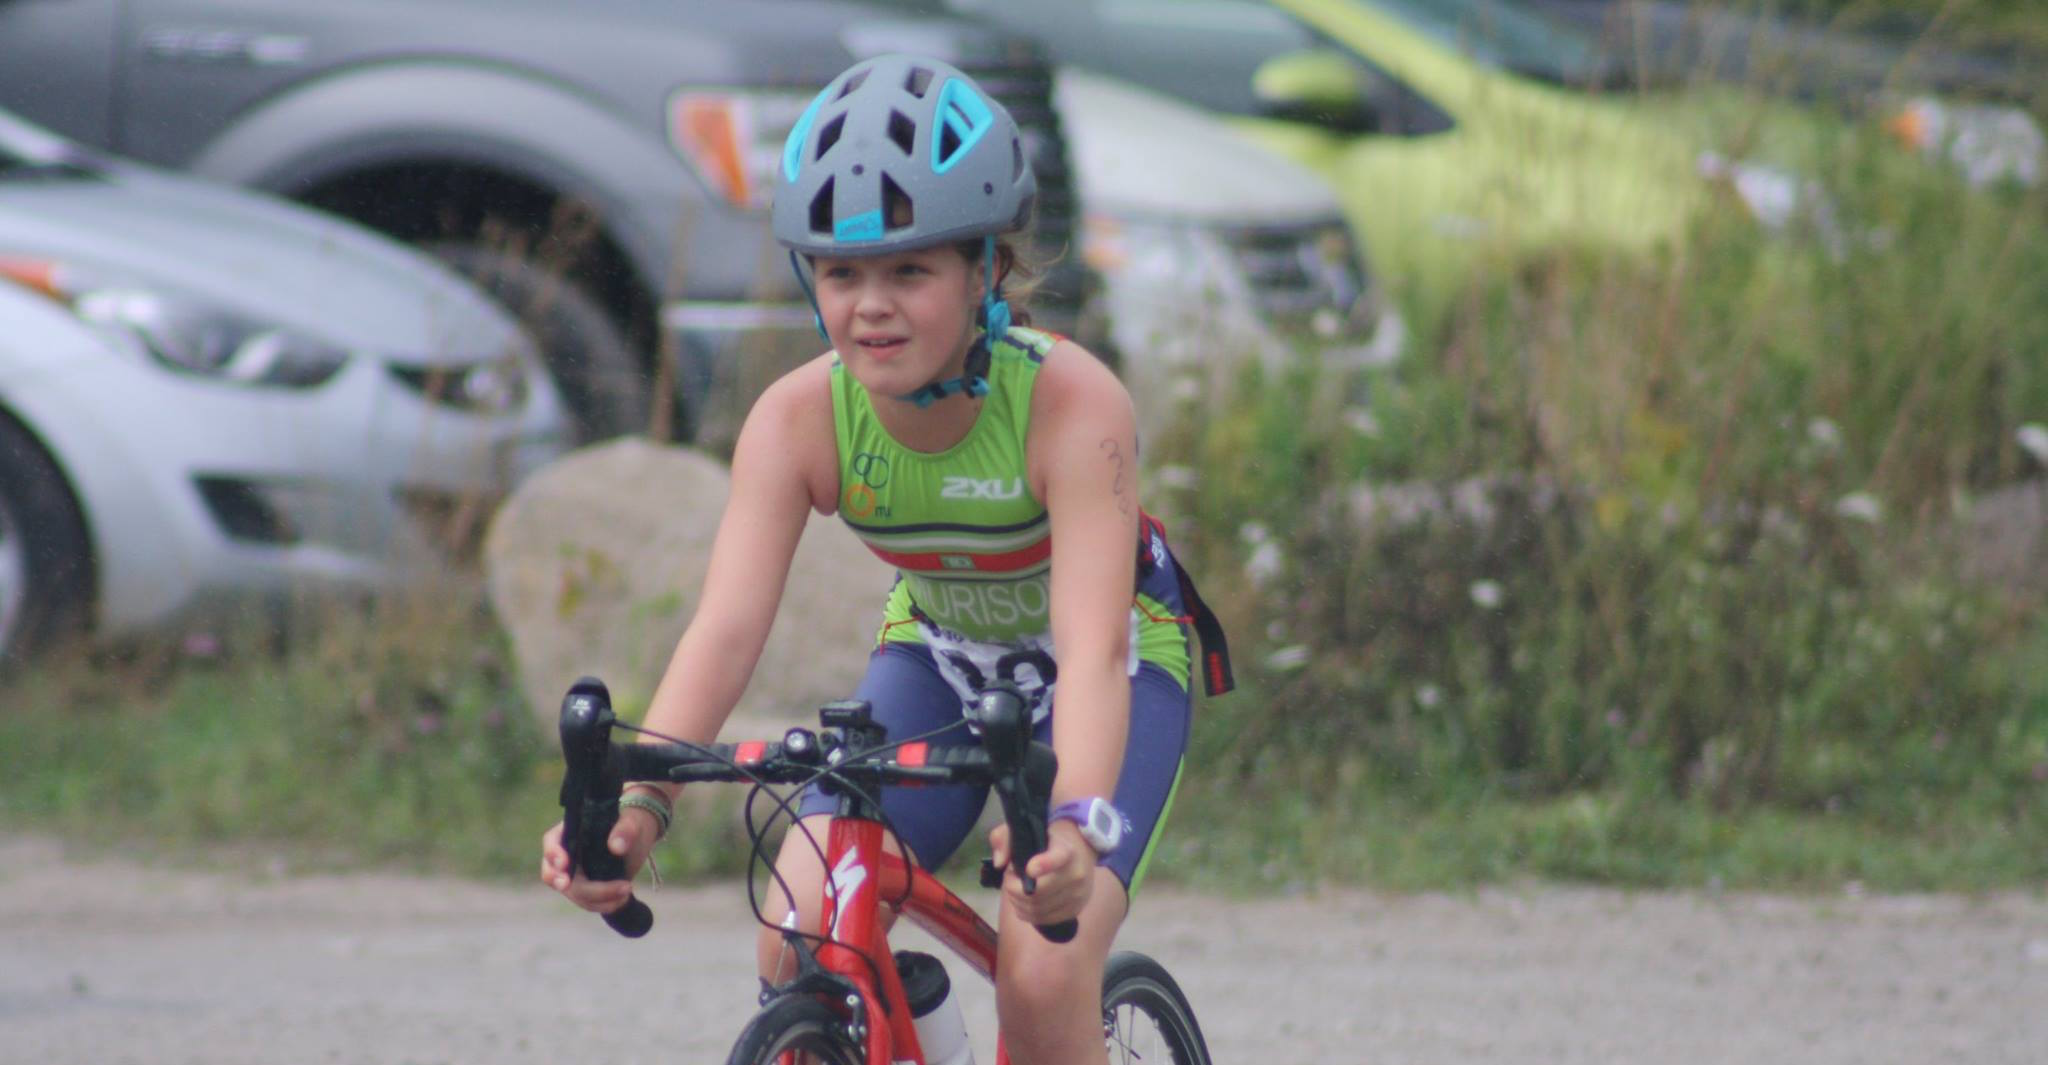 A young Peterborough Pirate Triathlon Club athlete racing her bike